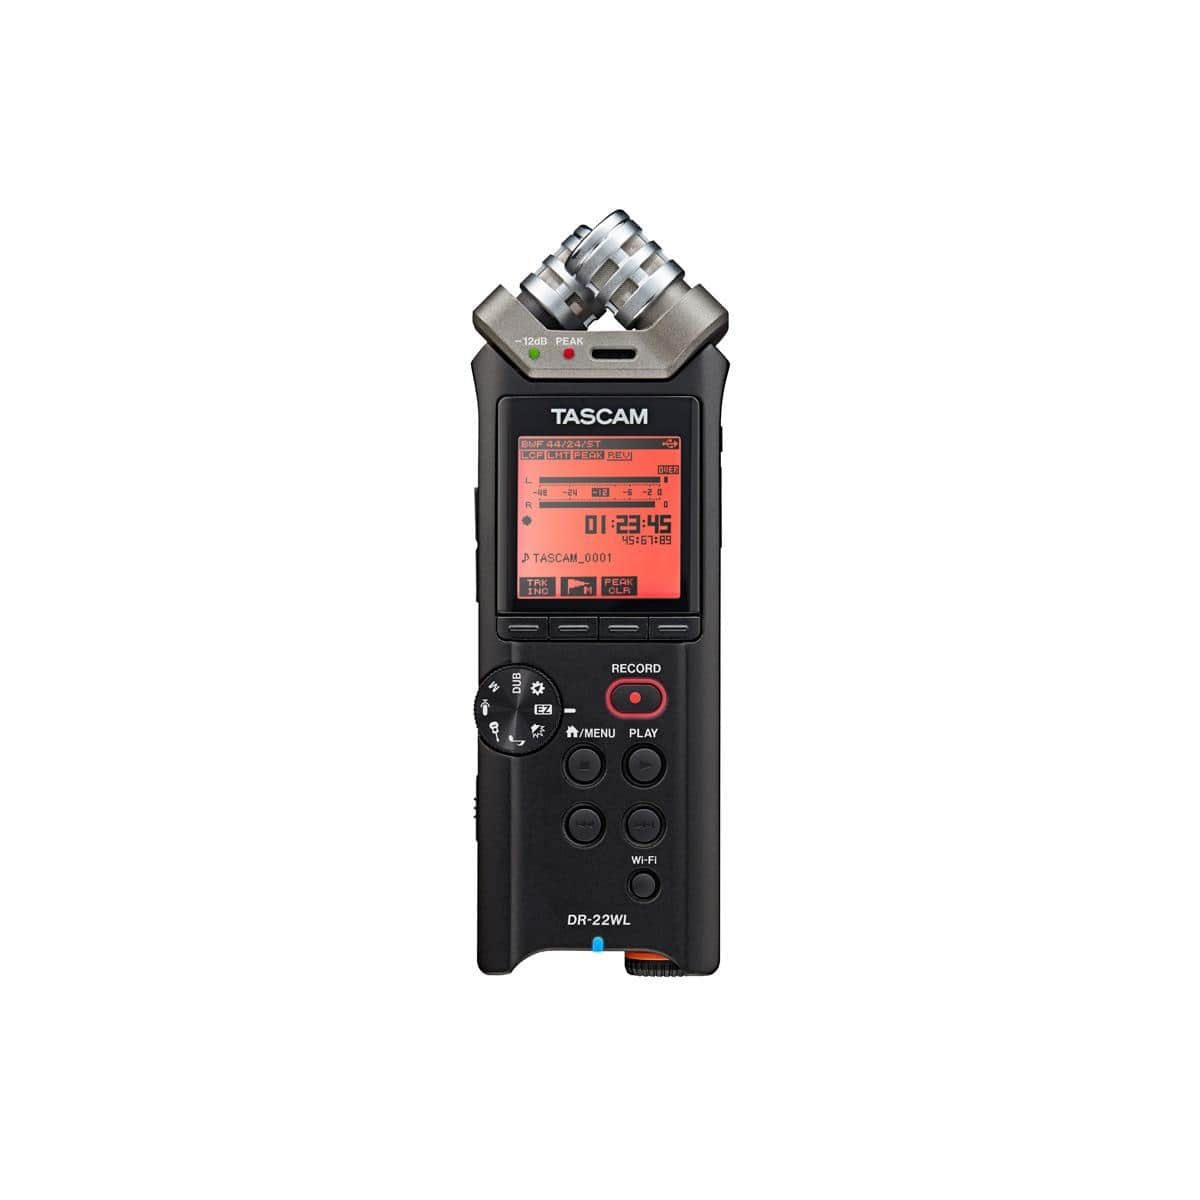 Tascam DP-006 6-Track Digital Multitrack Recorder $84 or Tascam DR-22WL 2-Ch Handheld Audio Recorder w/ WiFi $80 + free s/h